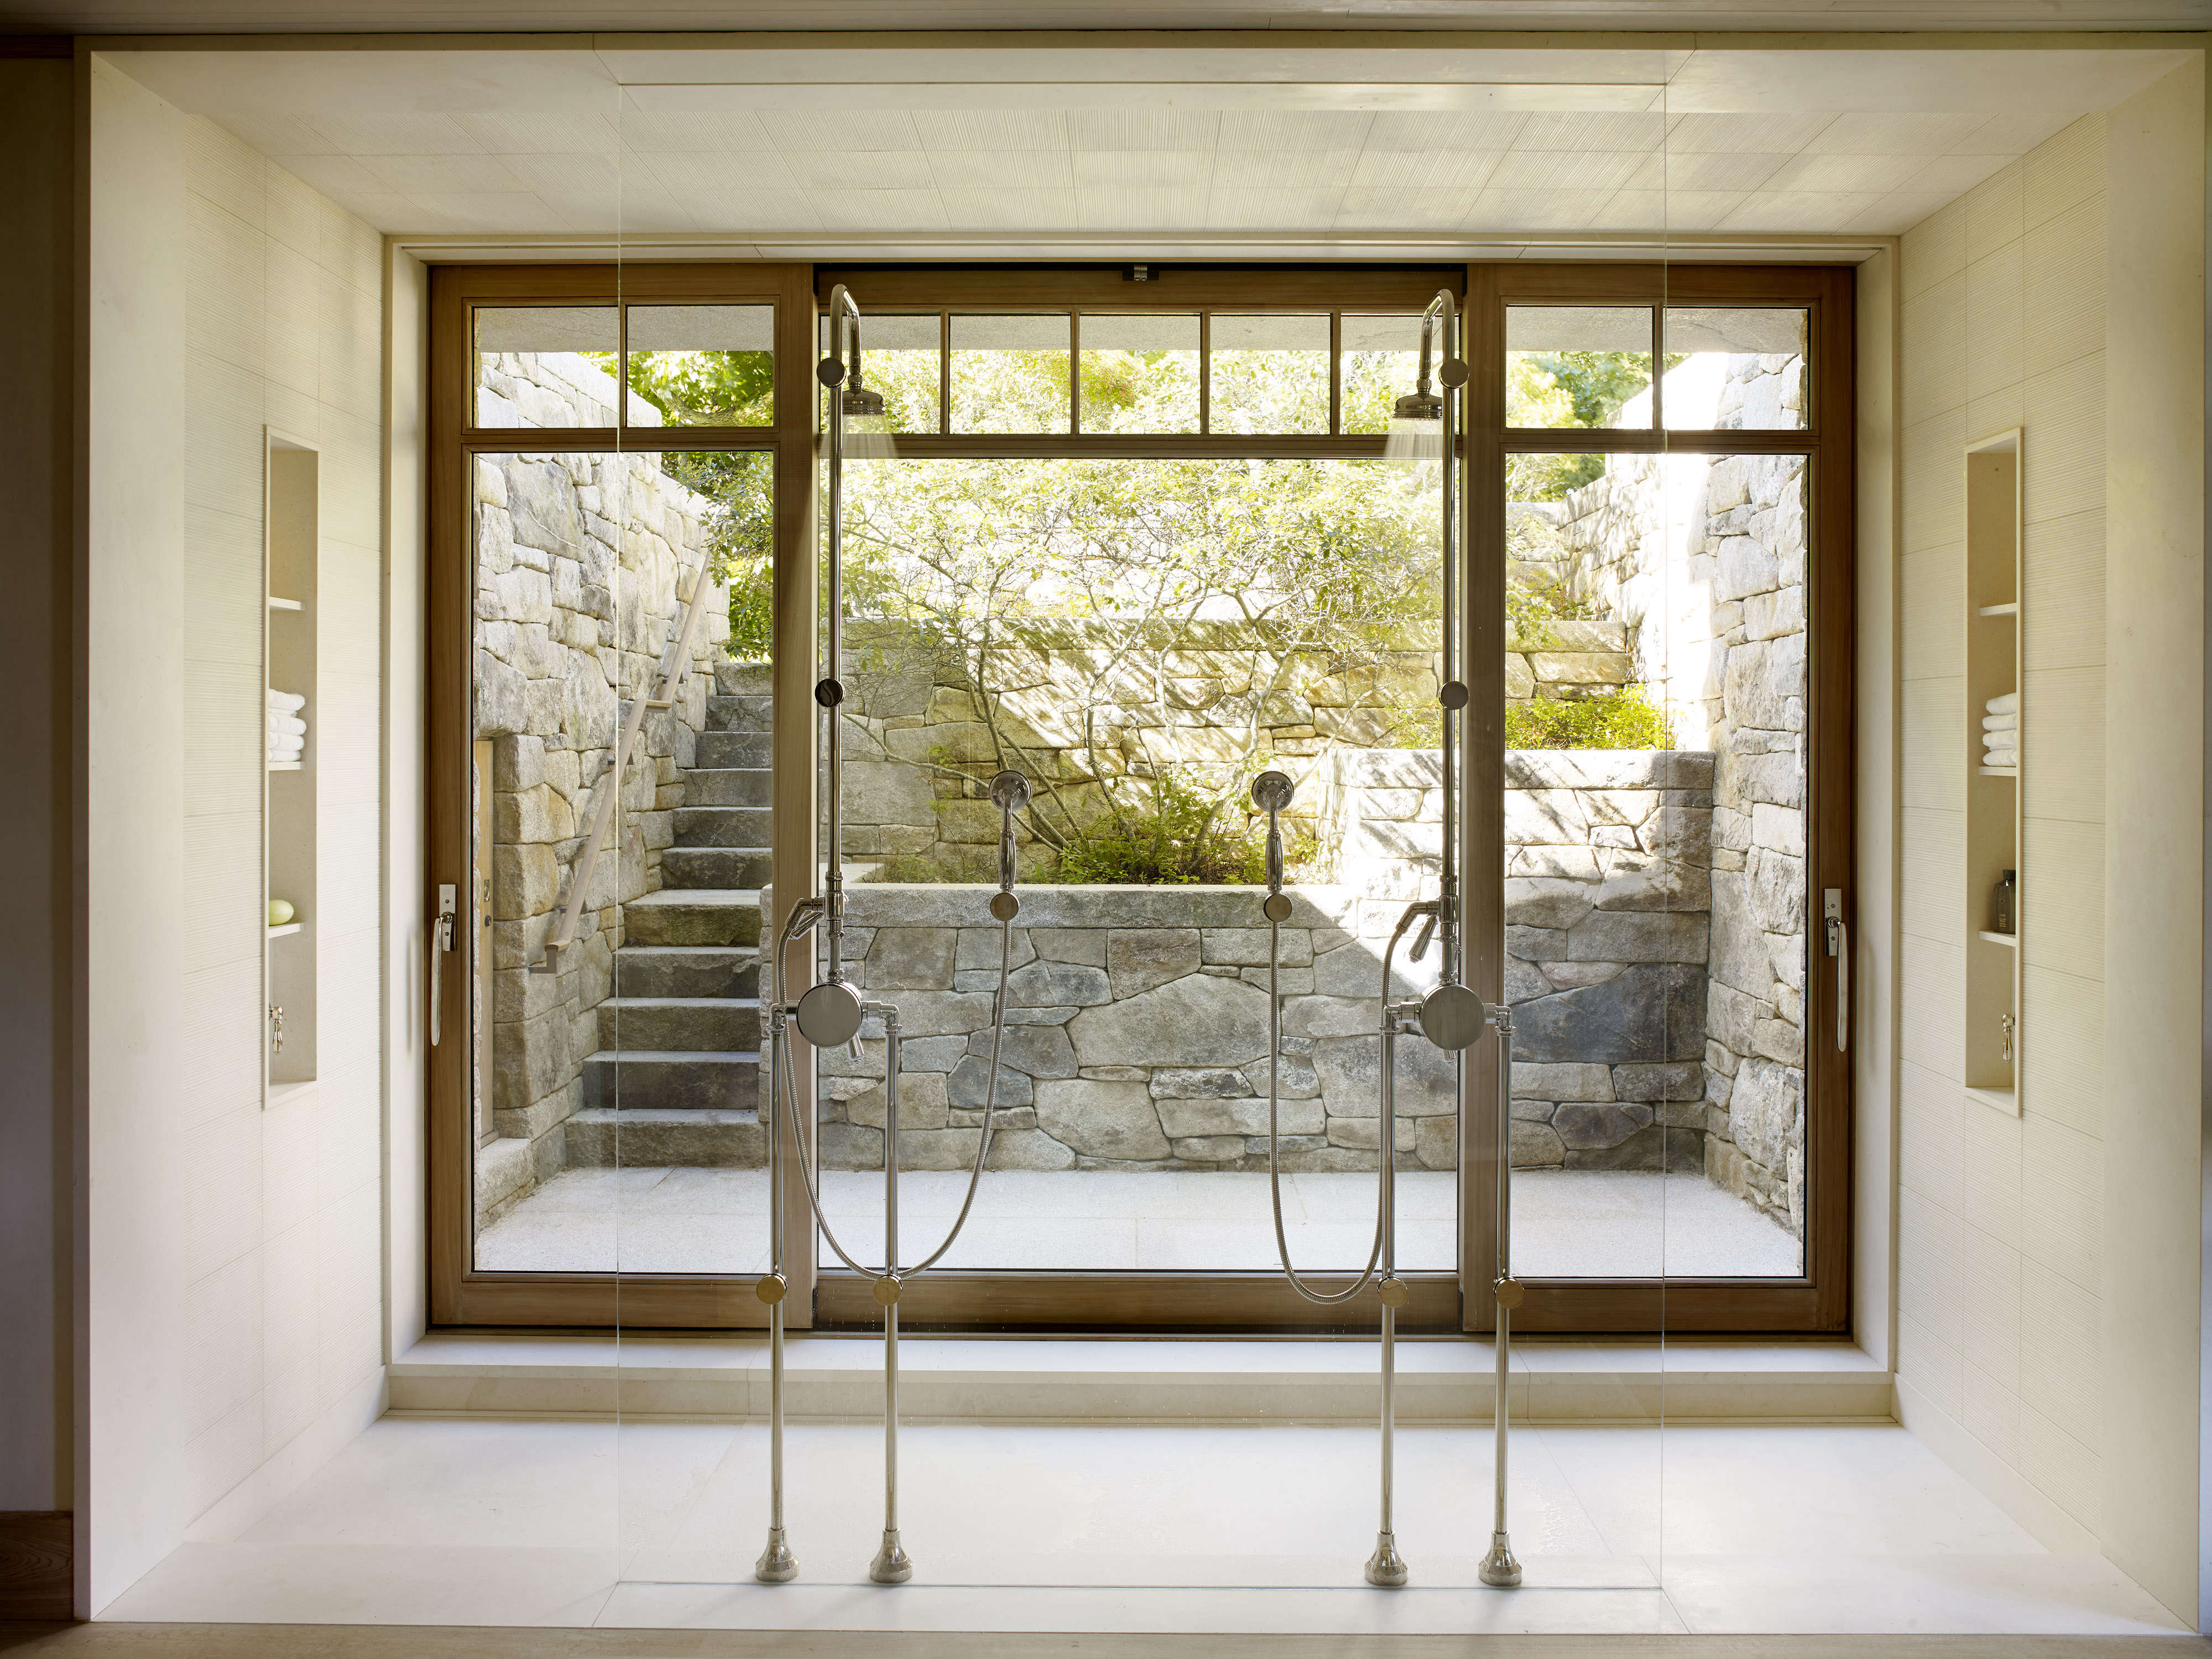 expert advice how to create the perfect bath from the grande shower opens onto backyard greenery light open